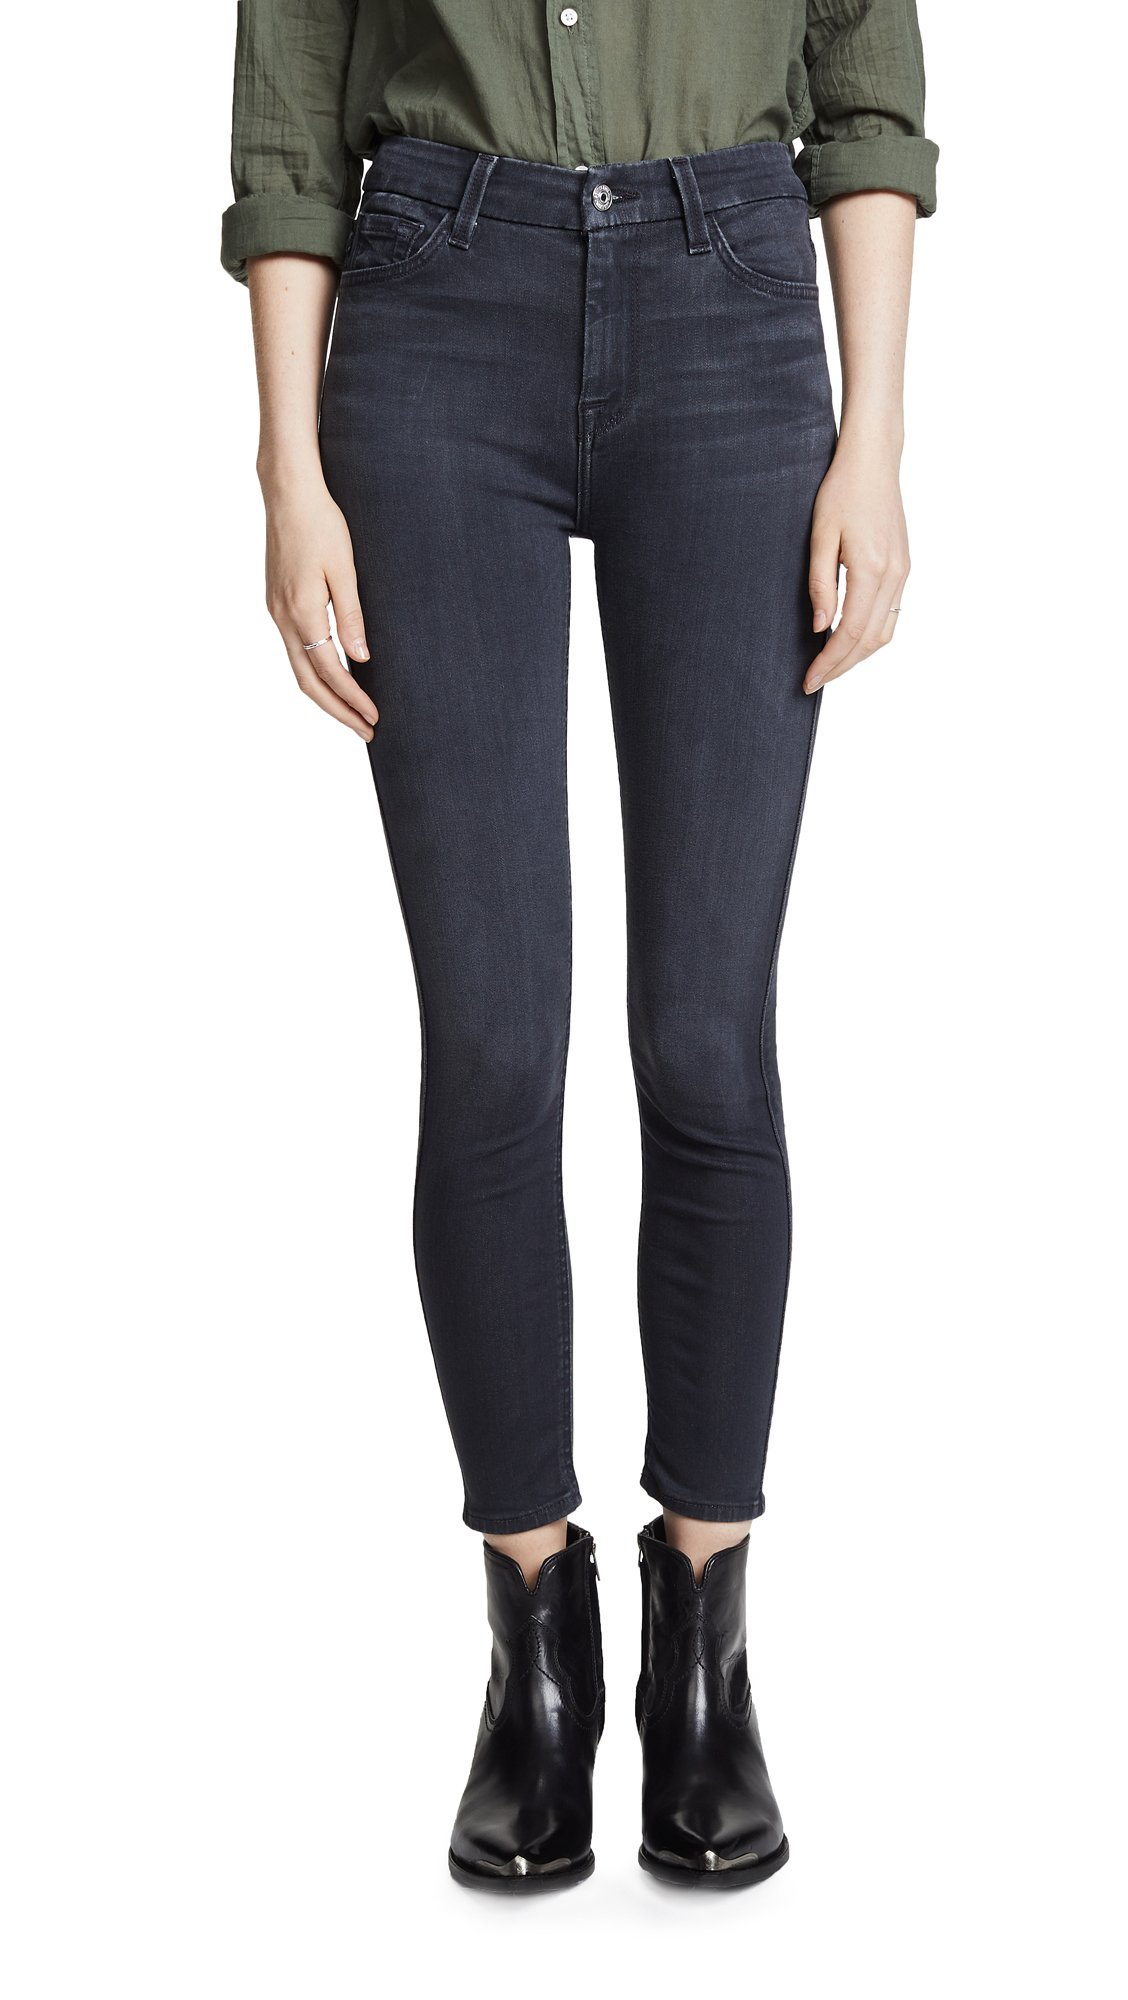 7 For All Mankind Women's The B(air) High Waisted Ankle Skinny Jeans